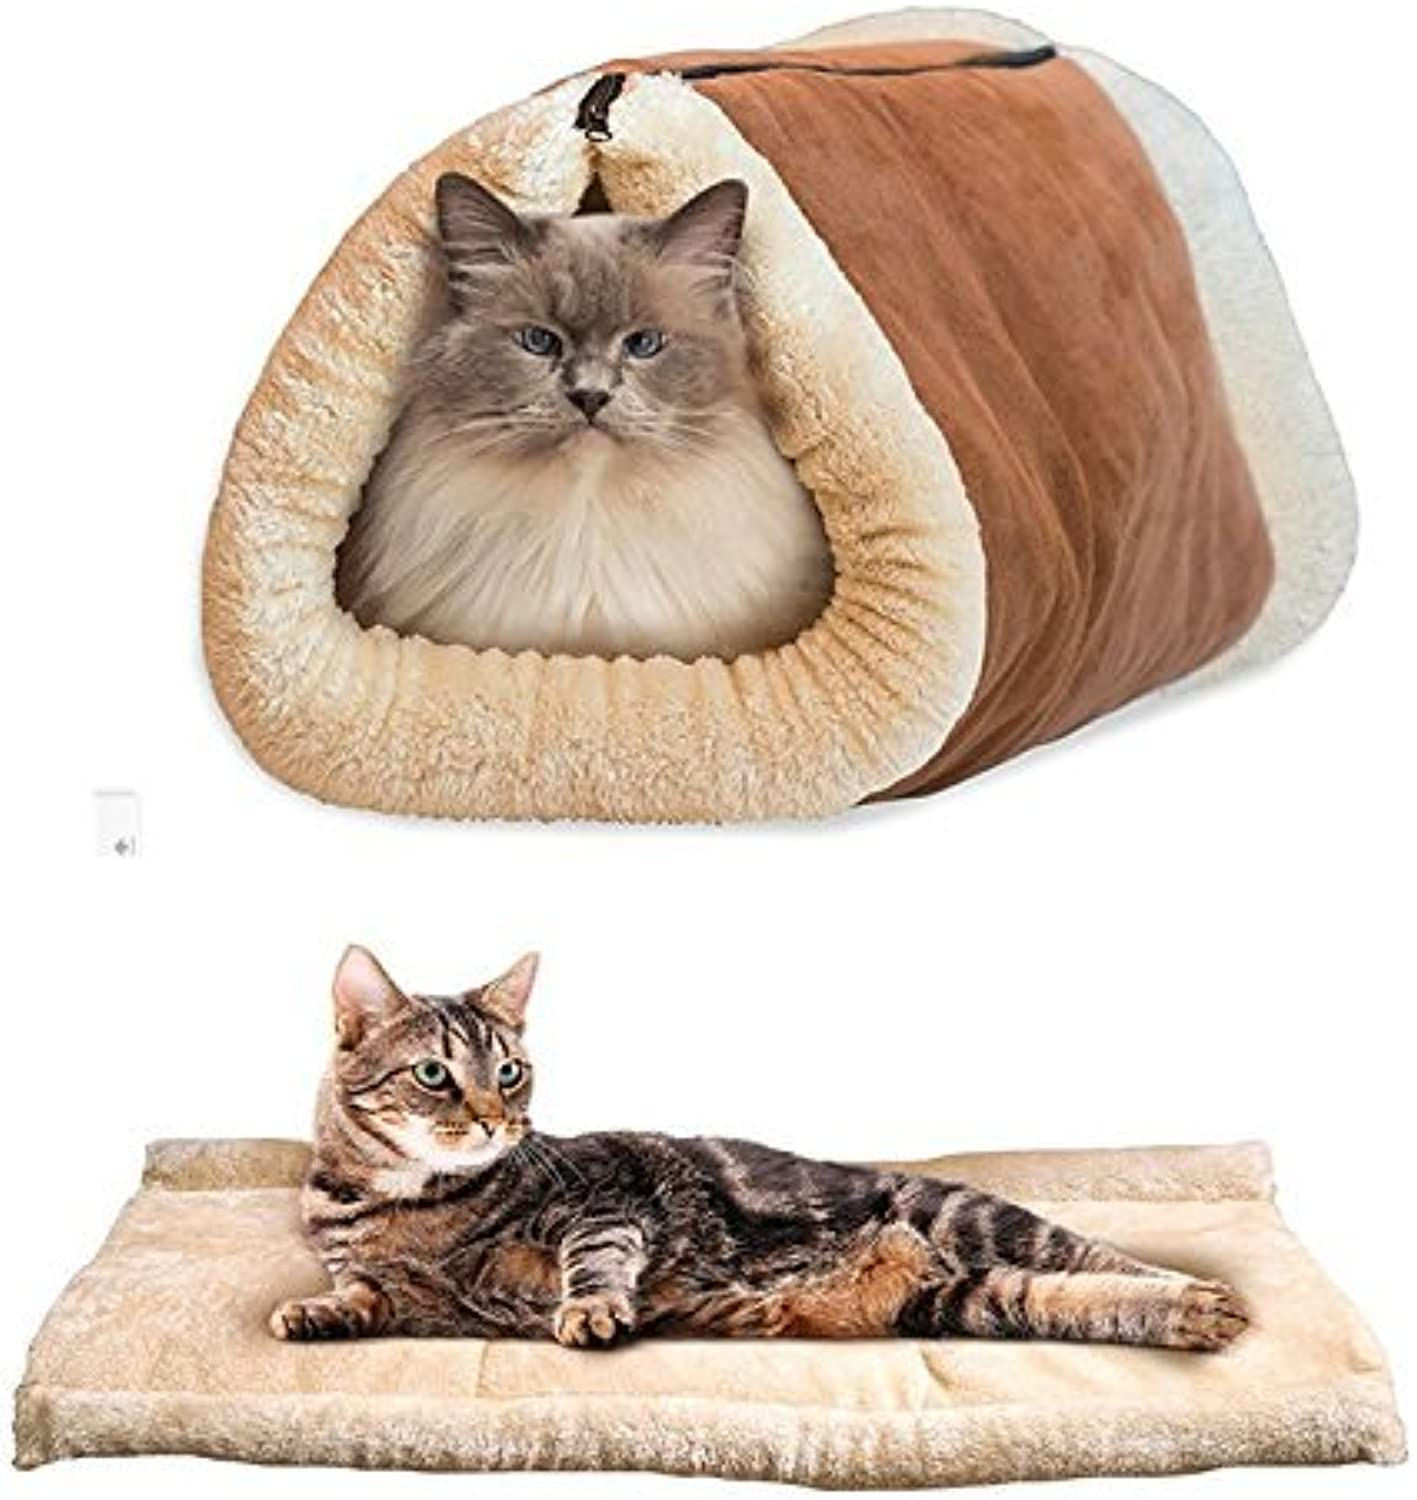 Huihuger Useful 2 in 1 Tube Cat Mat and Bed Small Pet Bed Tunnel Fleece Indoor Cushion Mat Cotton Pad For Dog Puppy Kitten Kitty Kennel Crate Cage Shack House Brown Pet Favorites